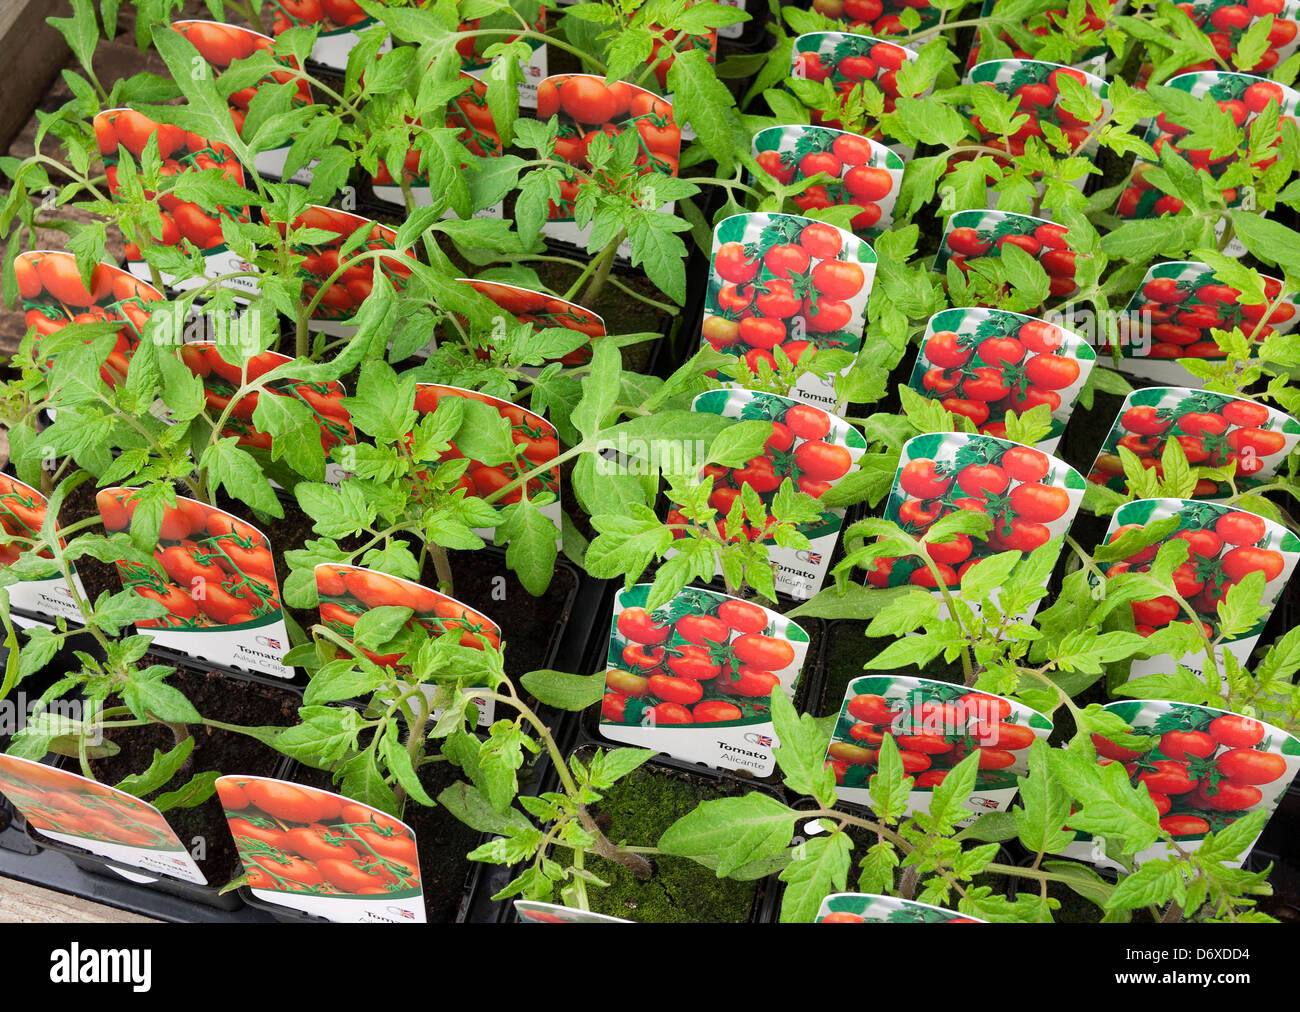 tomato plants in nursery - Stock Image